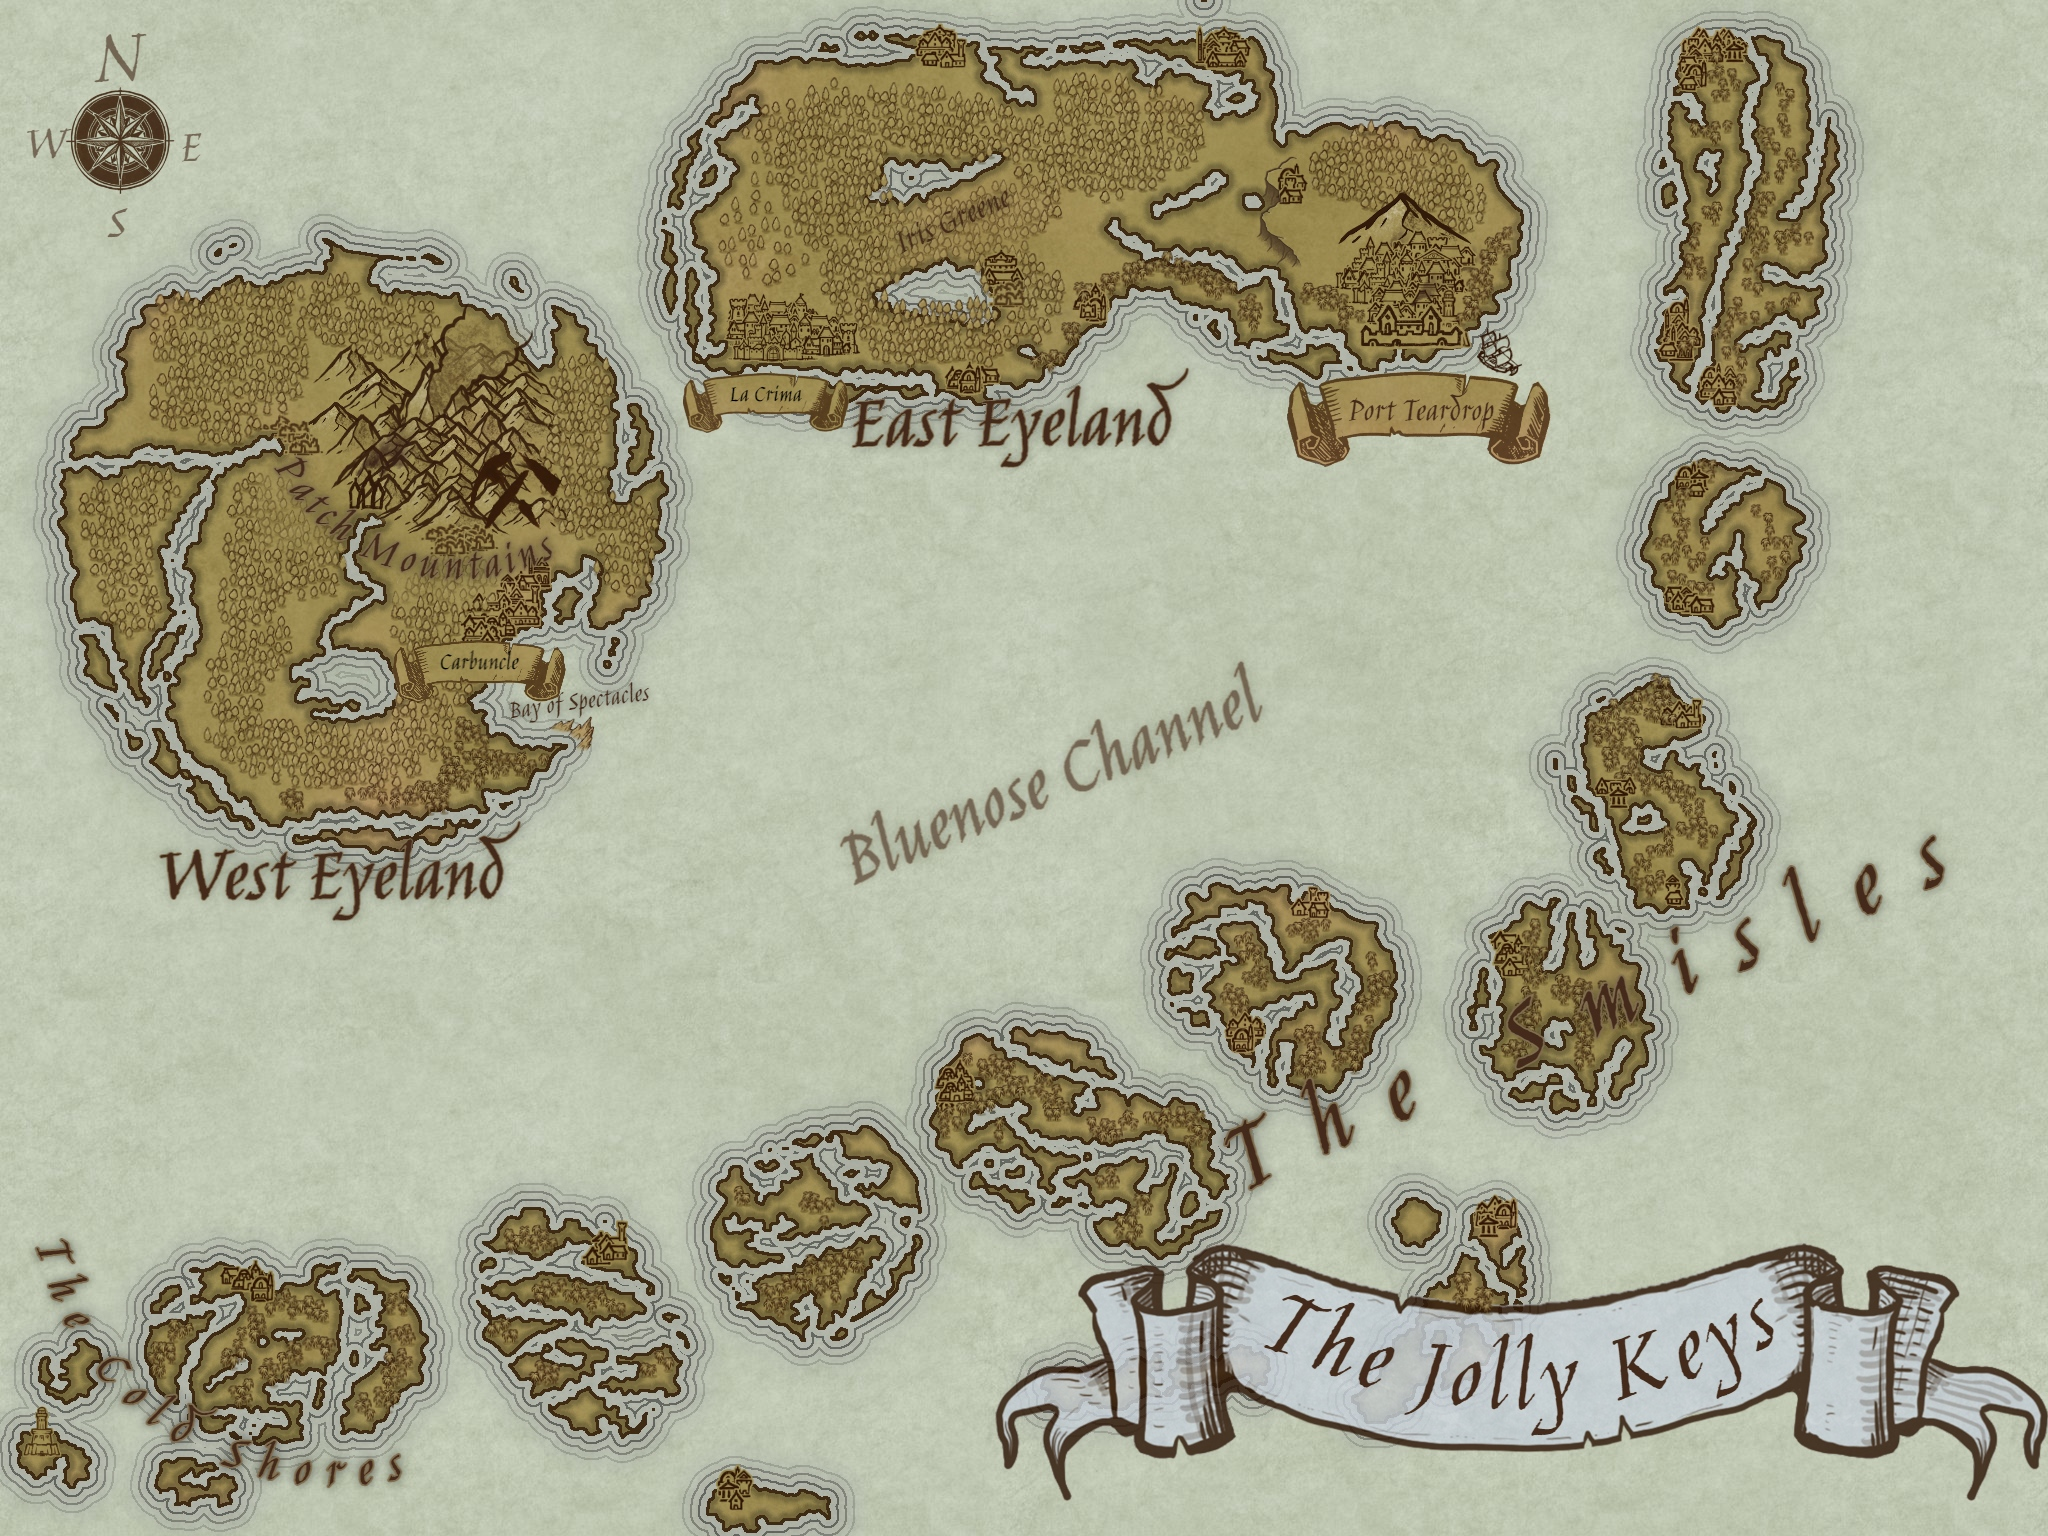 A Map of The Jolly Keys